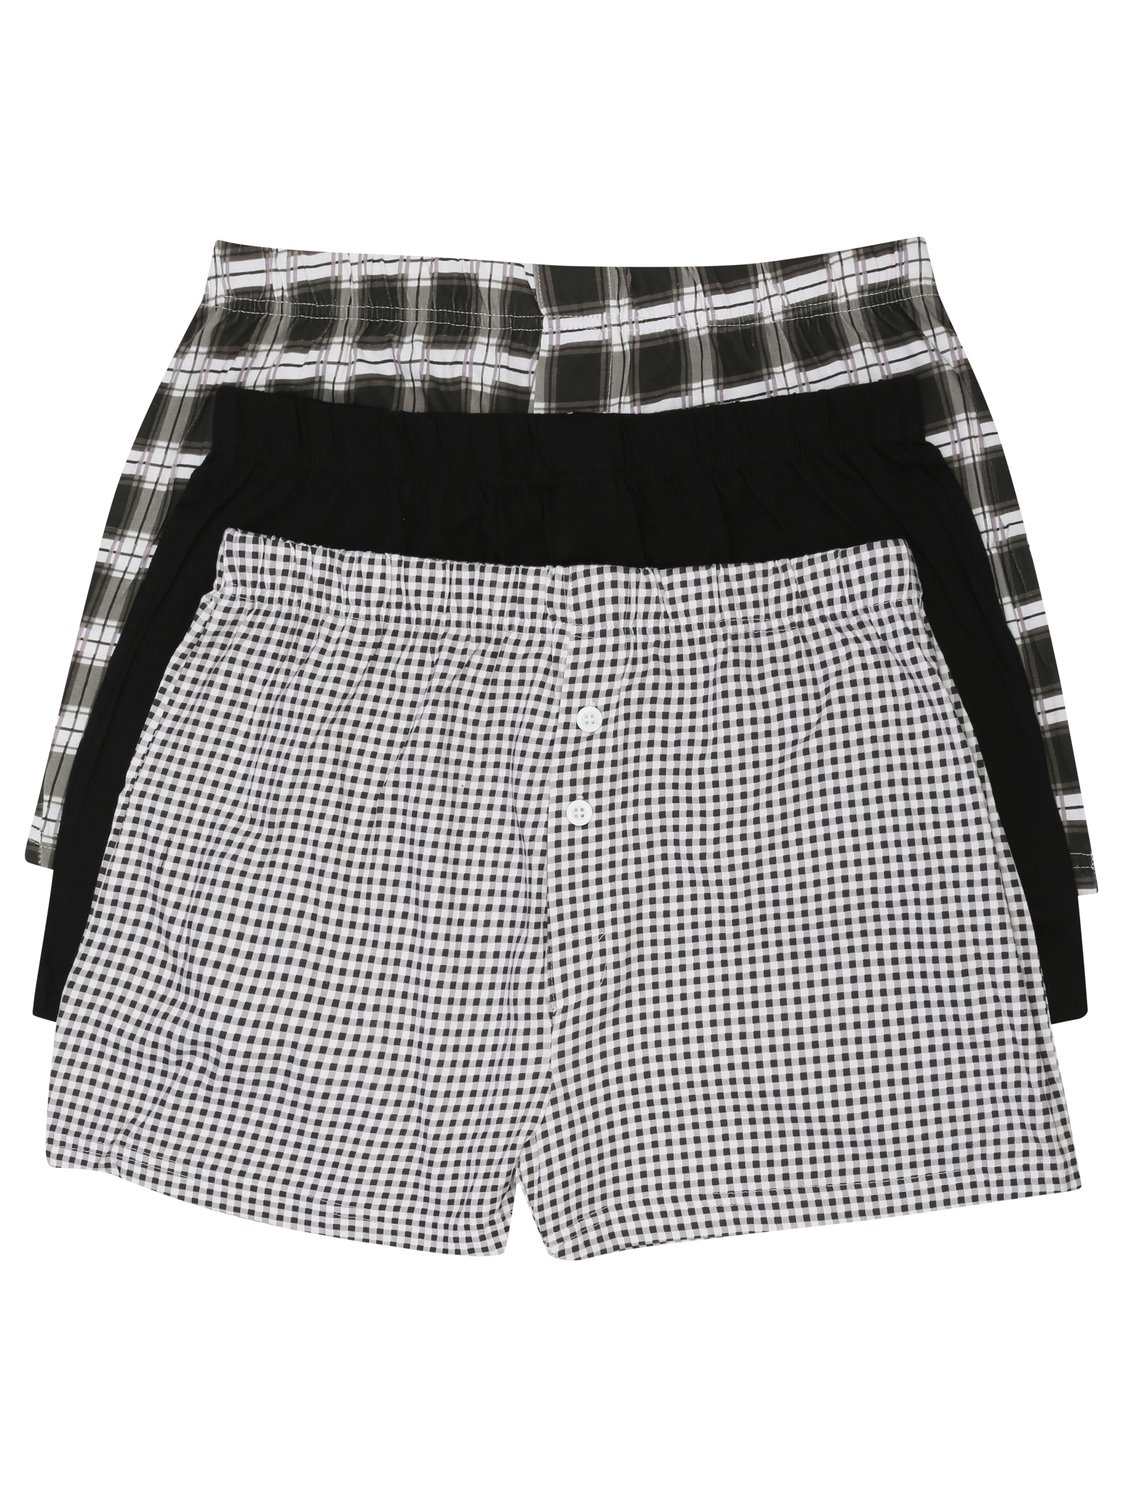 Image of Mens 100% Cotton Mixed Check Print And Plain Black Button Front Boxer Shorts - 3 Pack - Black